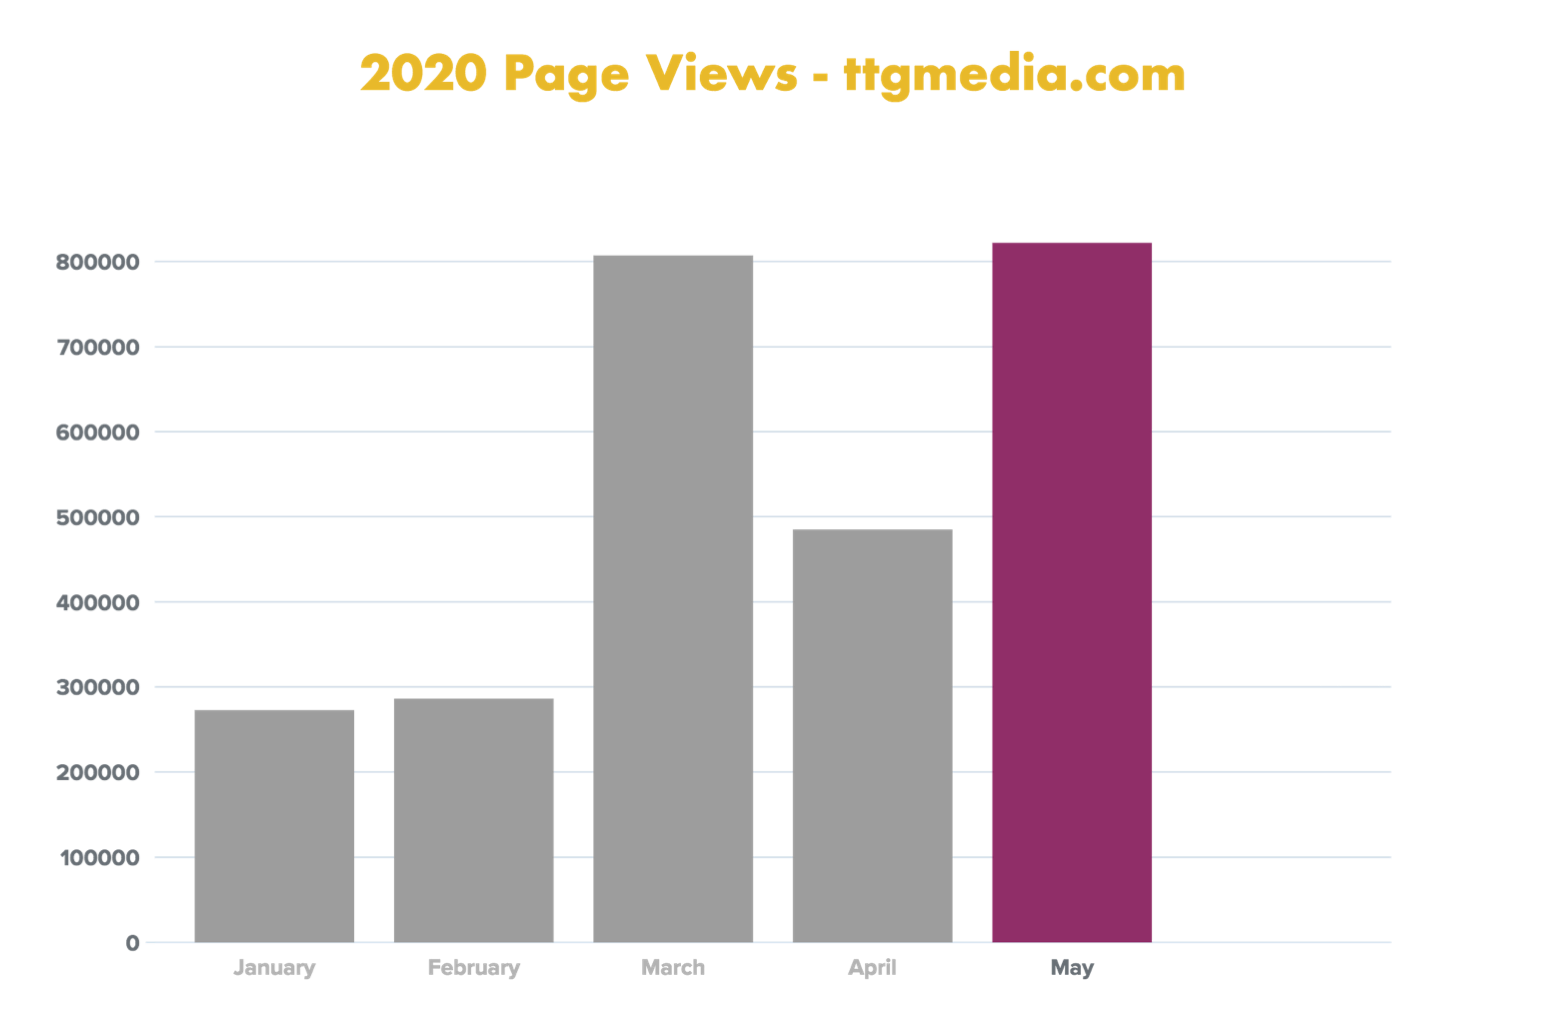 Pageviews 2020